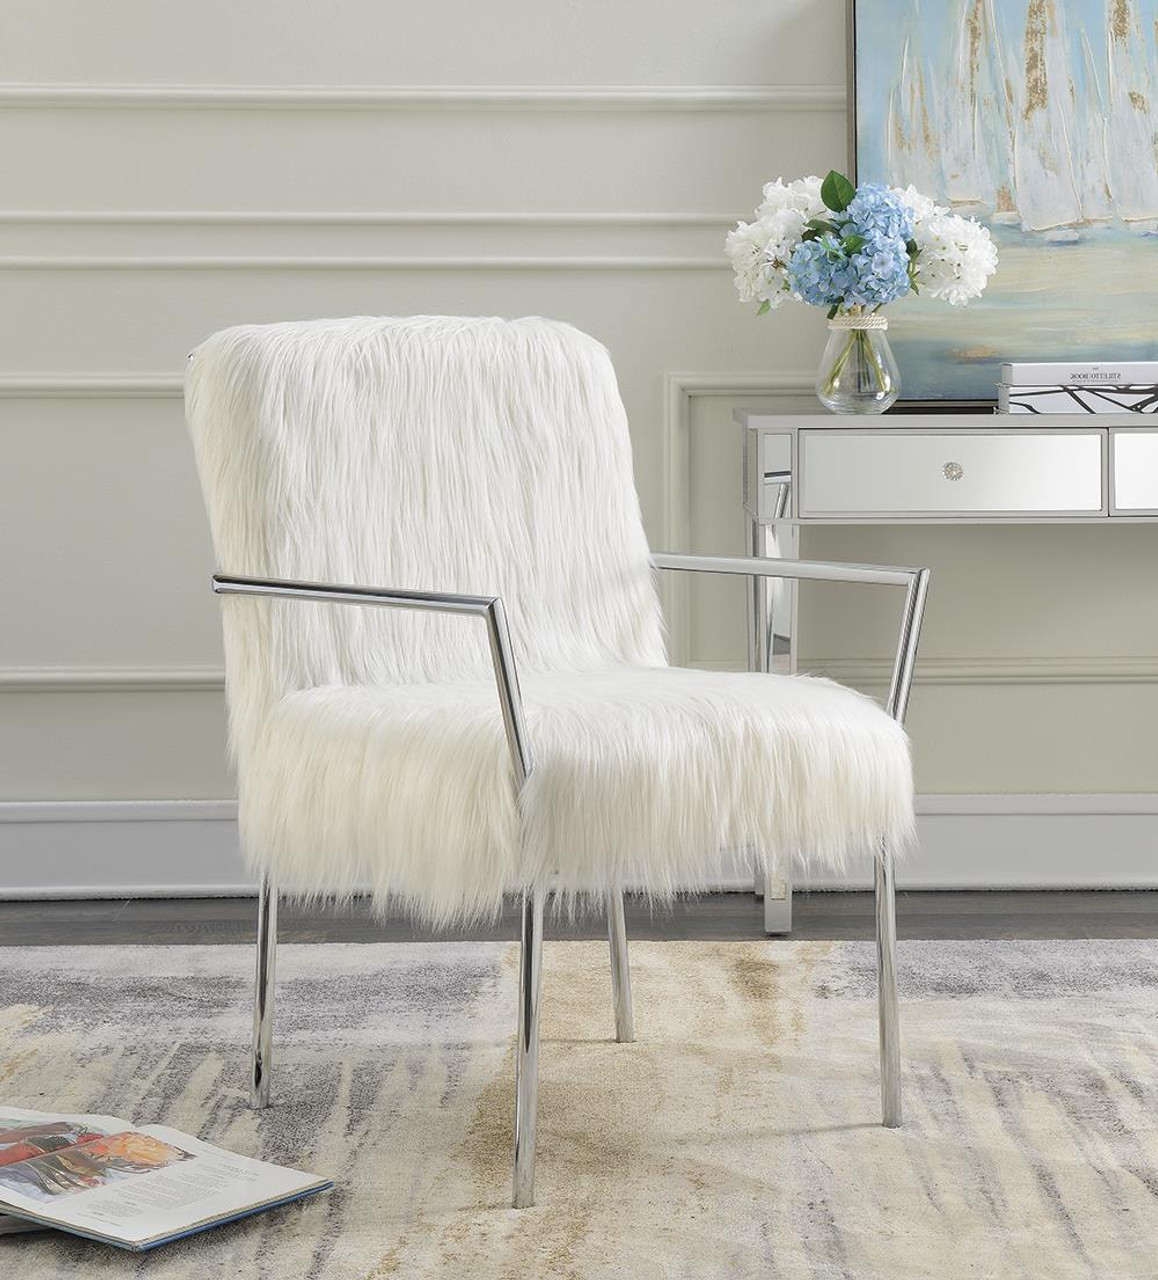 Coaster White Faux Sheepskin Upholstered Accent Chair With Metal Arm White 904079 On Sale At Spokane Furniture Company Serving Spokane Post Falls Coeur D Alene Wa Spokane Valley Post Falls And